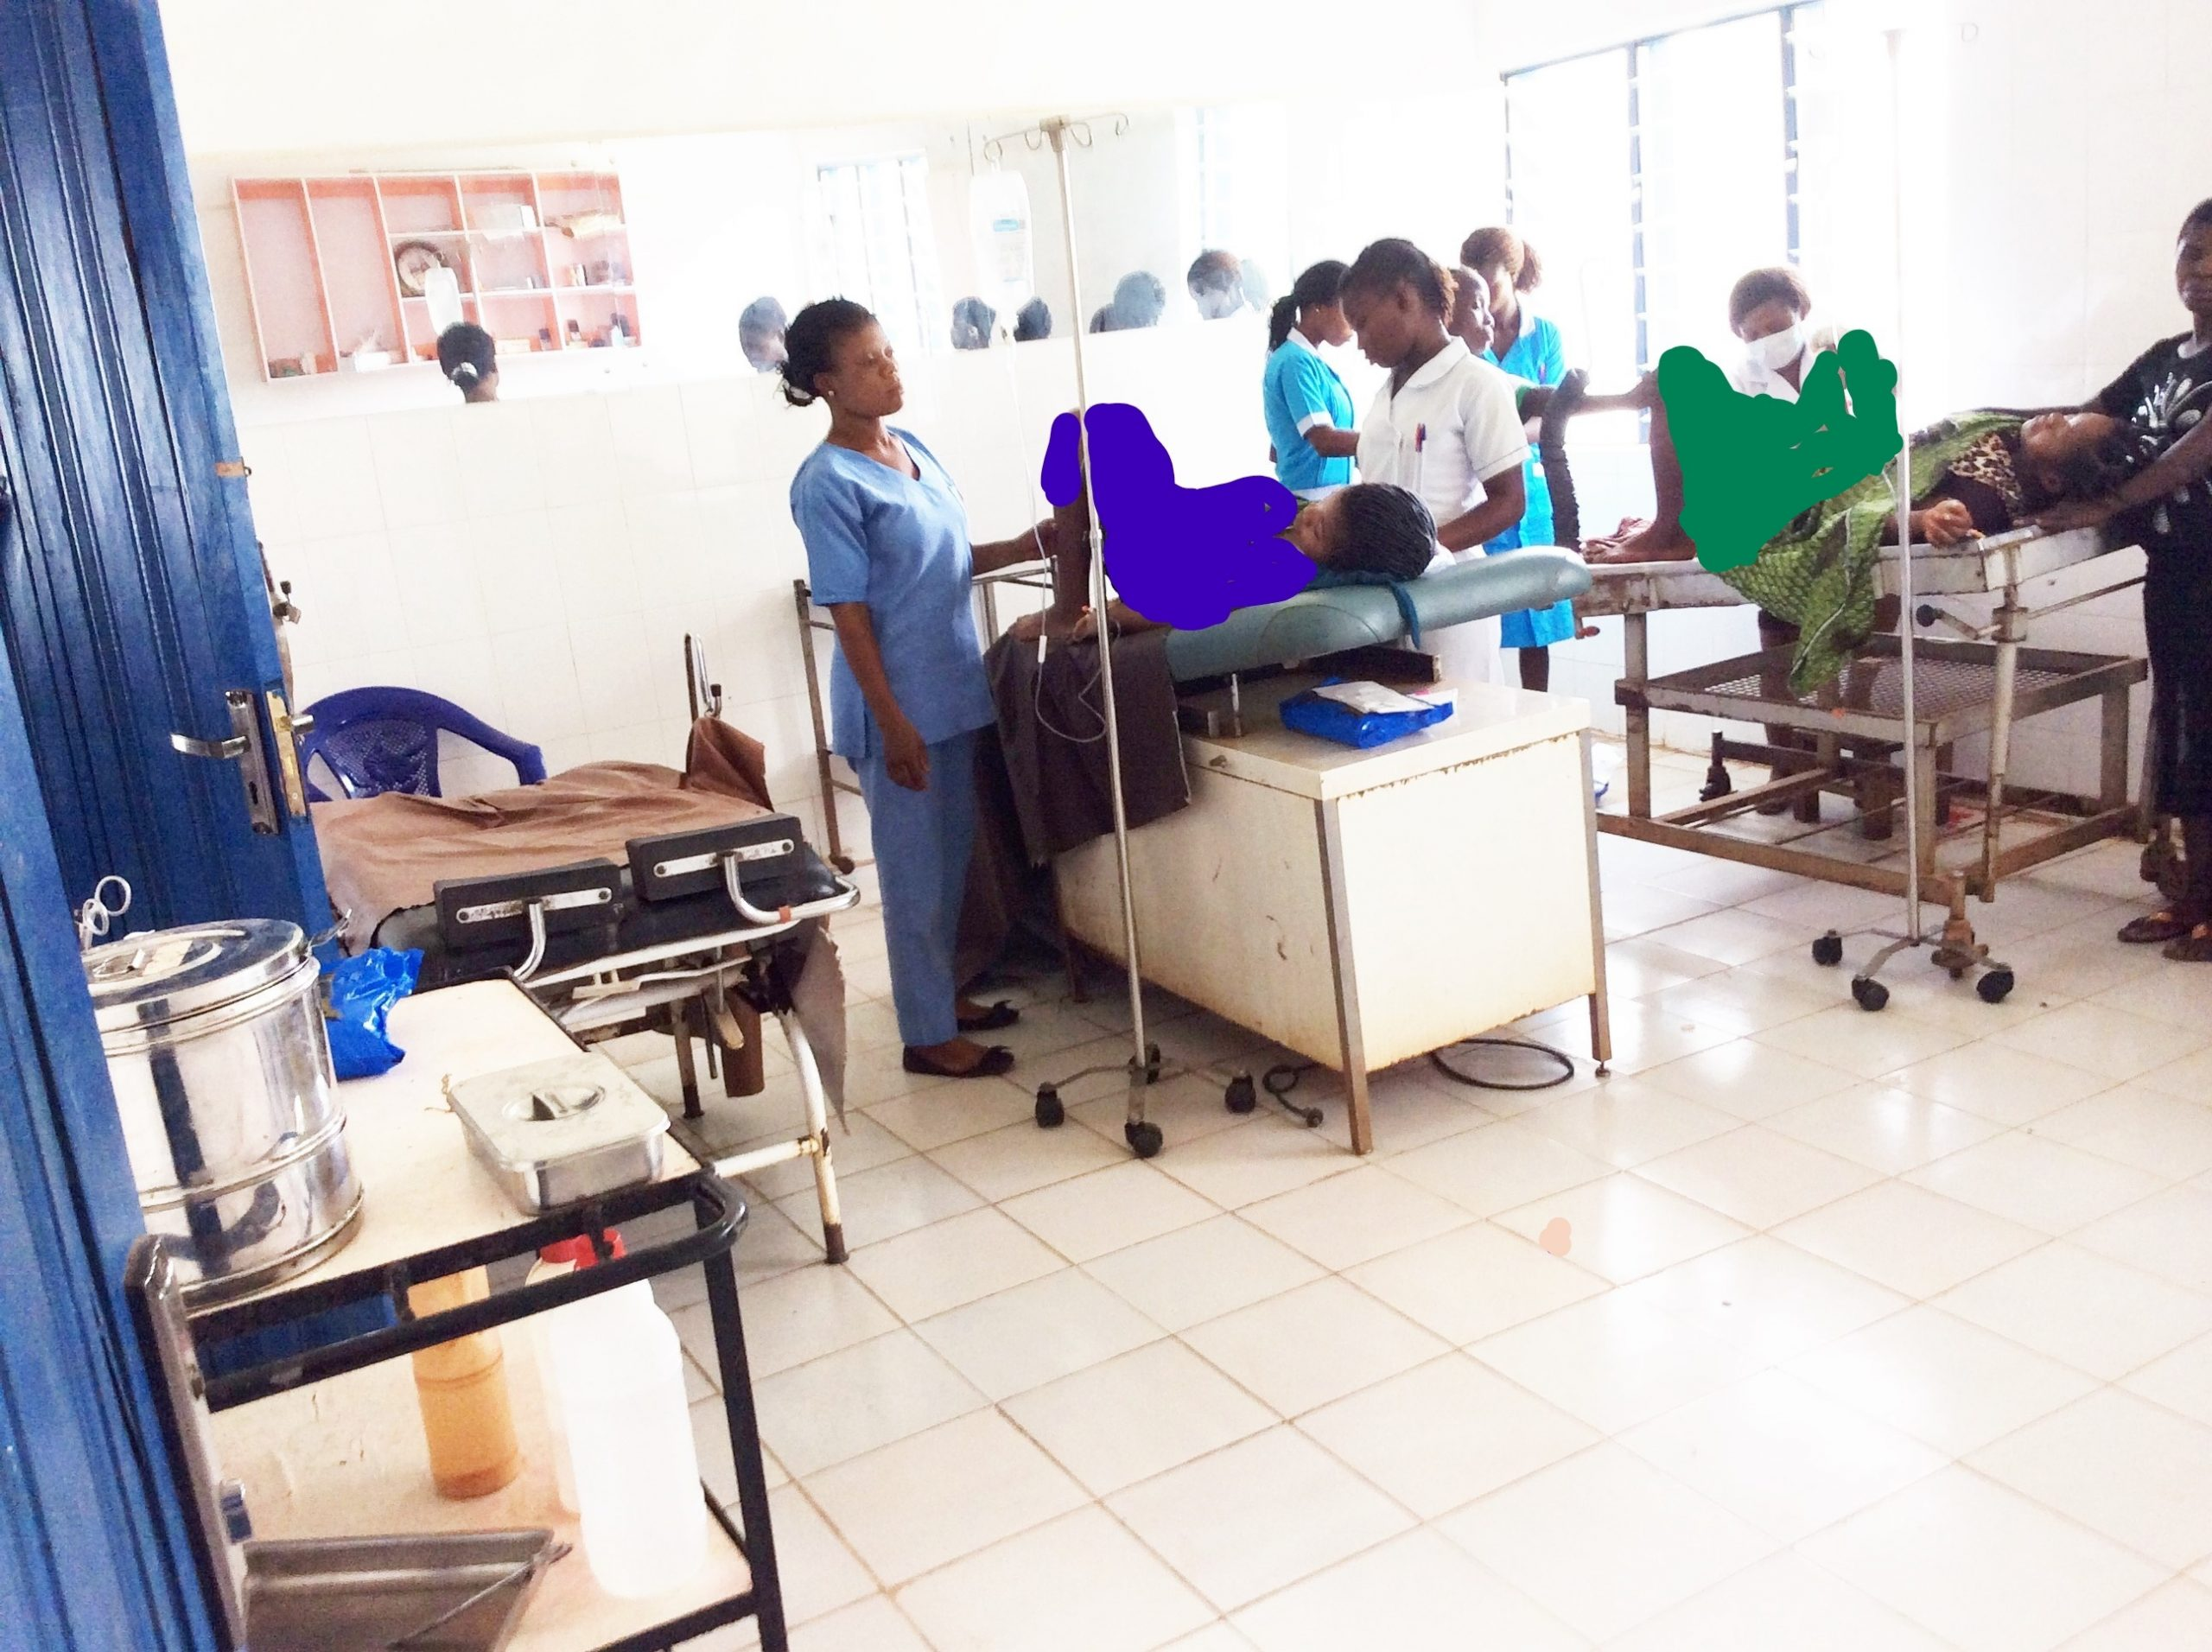 Health workers attend to patients in a maternity ward in Nigeria.